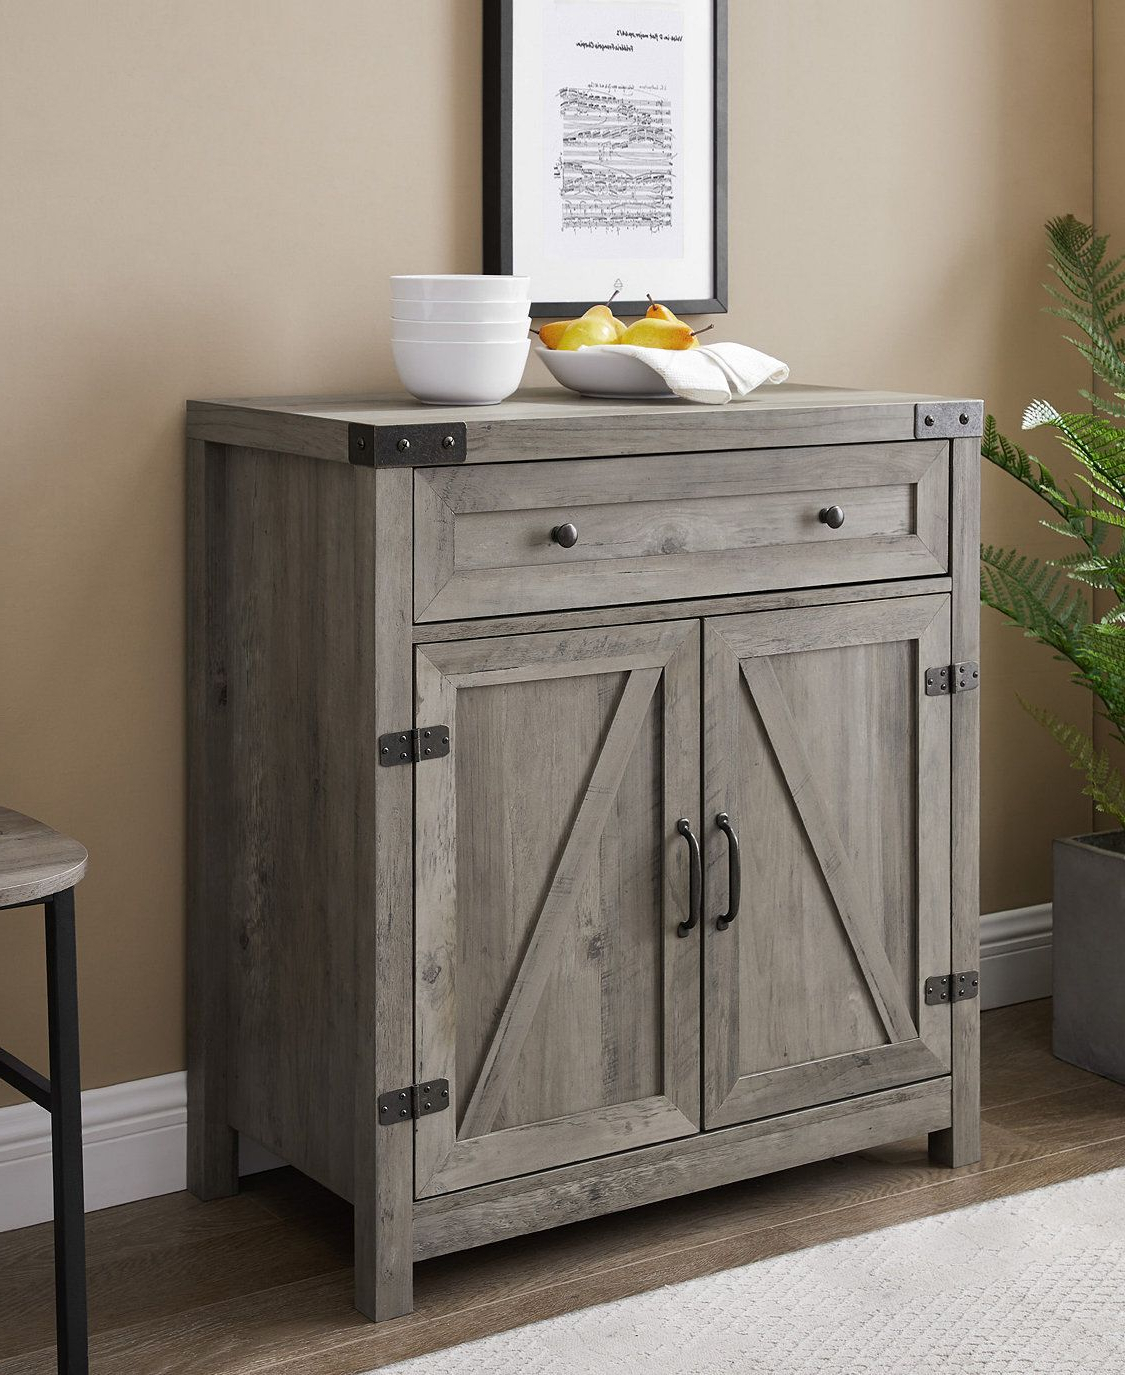 Manor Park Farmhouse Barn Door Accent Cabinet Reclaimed Regarding Woven Paths Barn Door Tv Stands In Multiple Finishes (View 18 of 20)